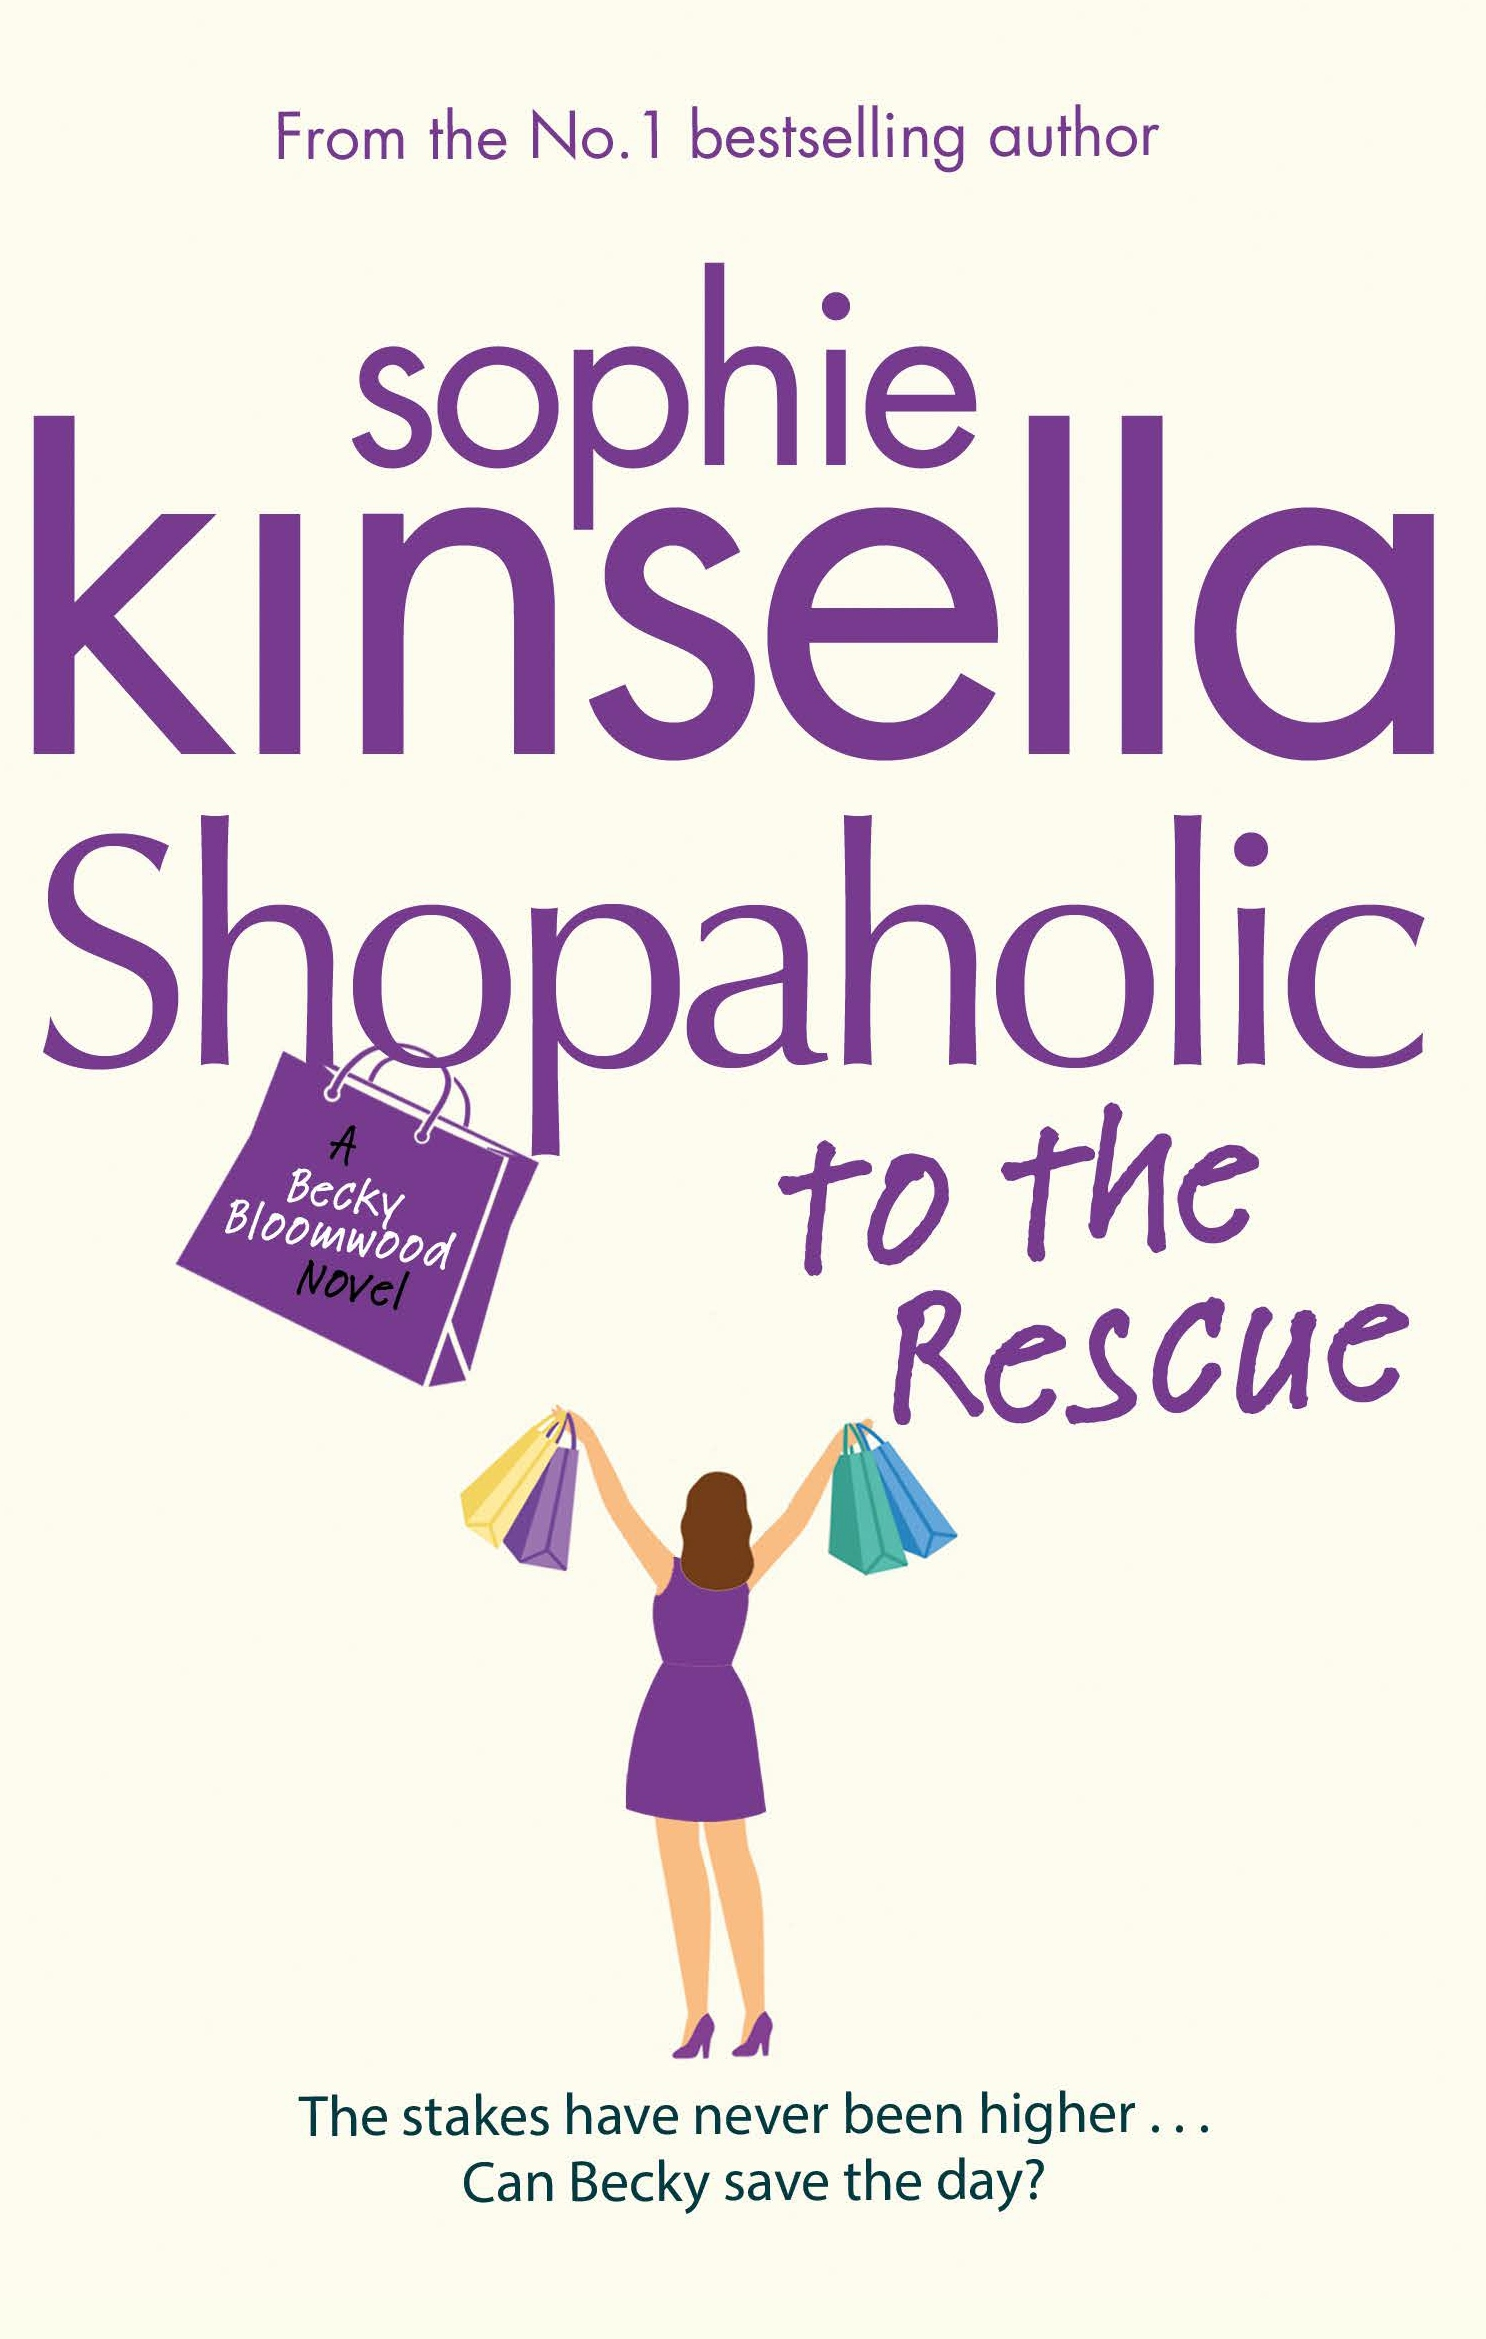 8. Shopaholic To The Rescue